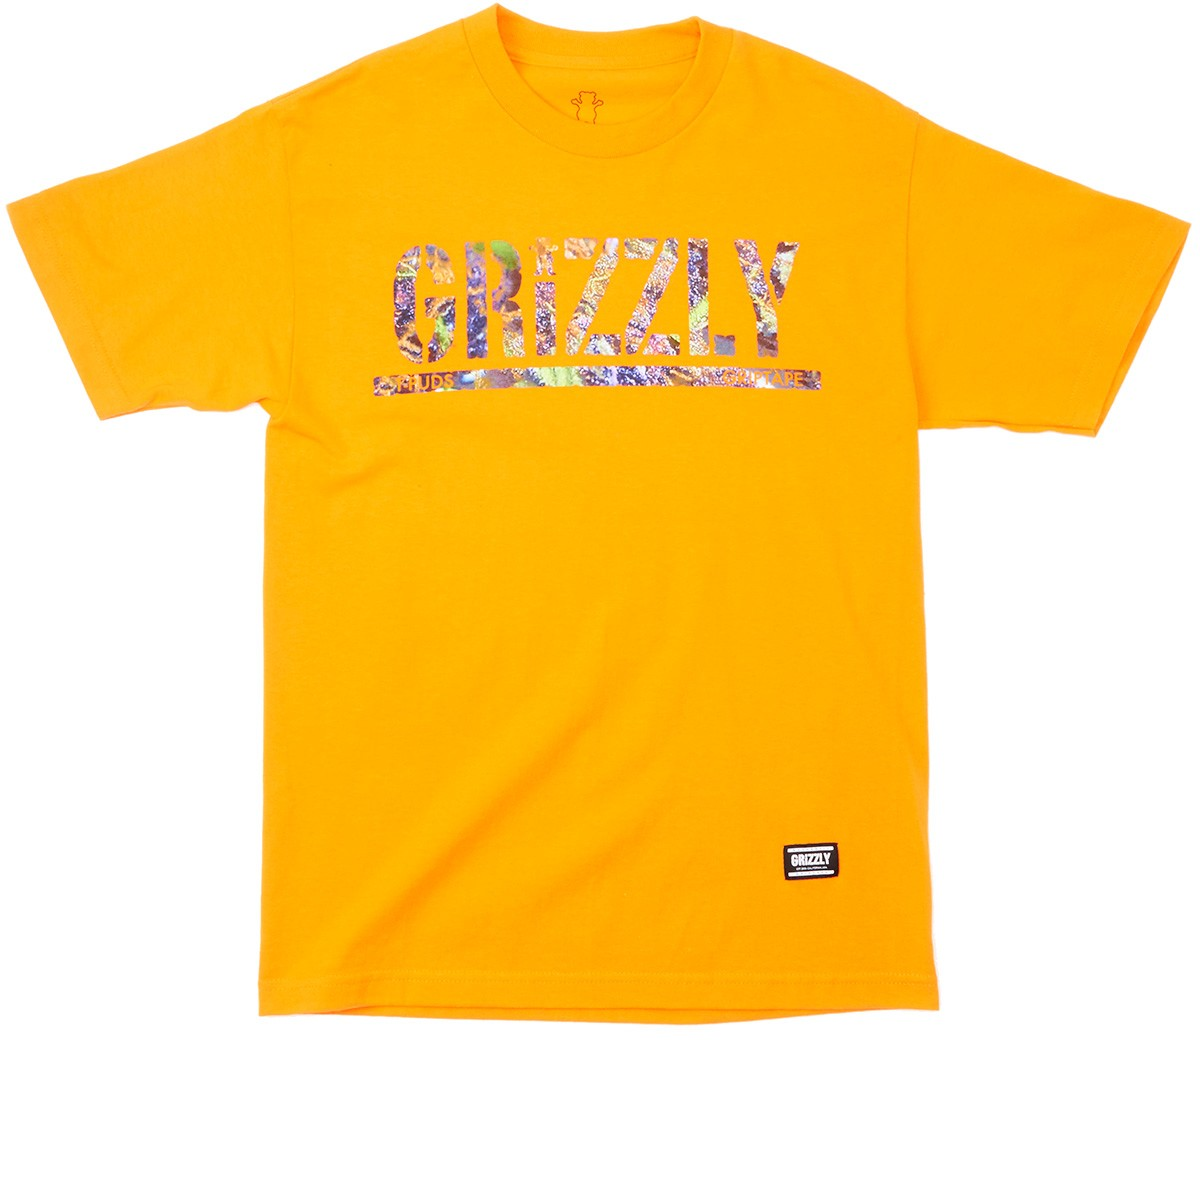 Grizzly Grip T-Puds Fruity Pebbles Stamp T-Shirt - Orange